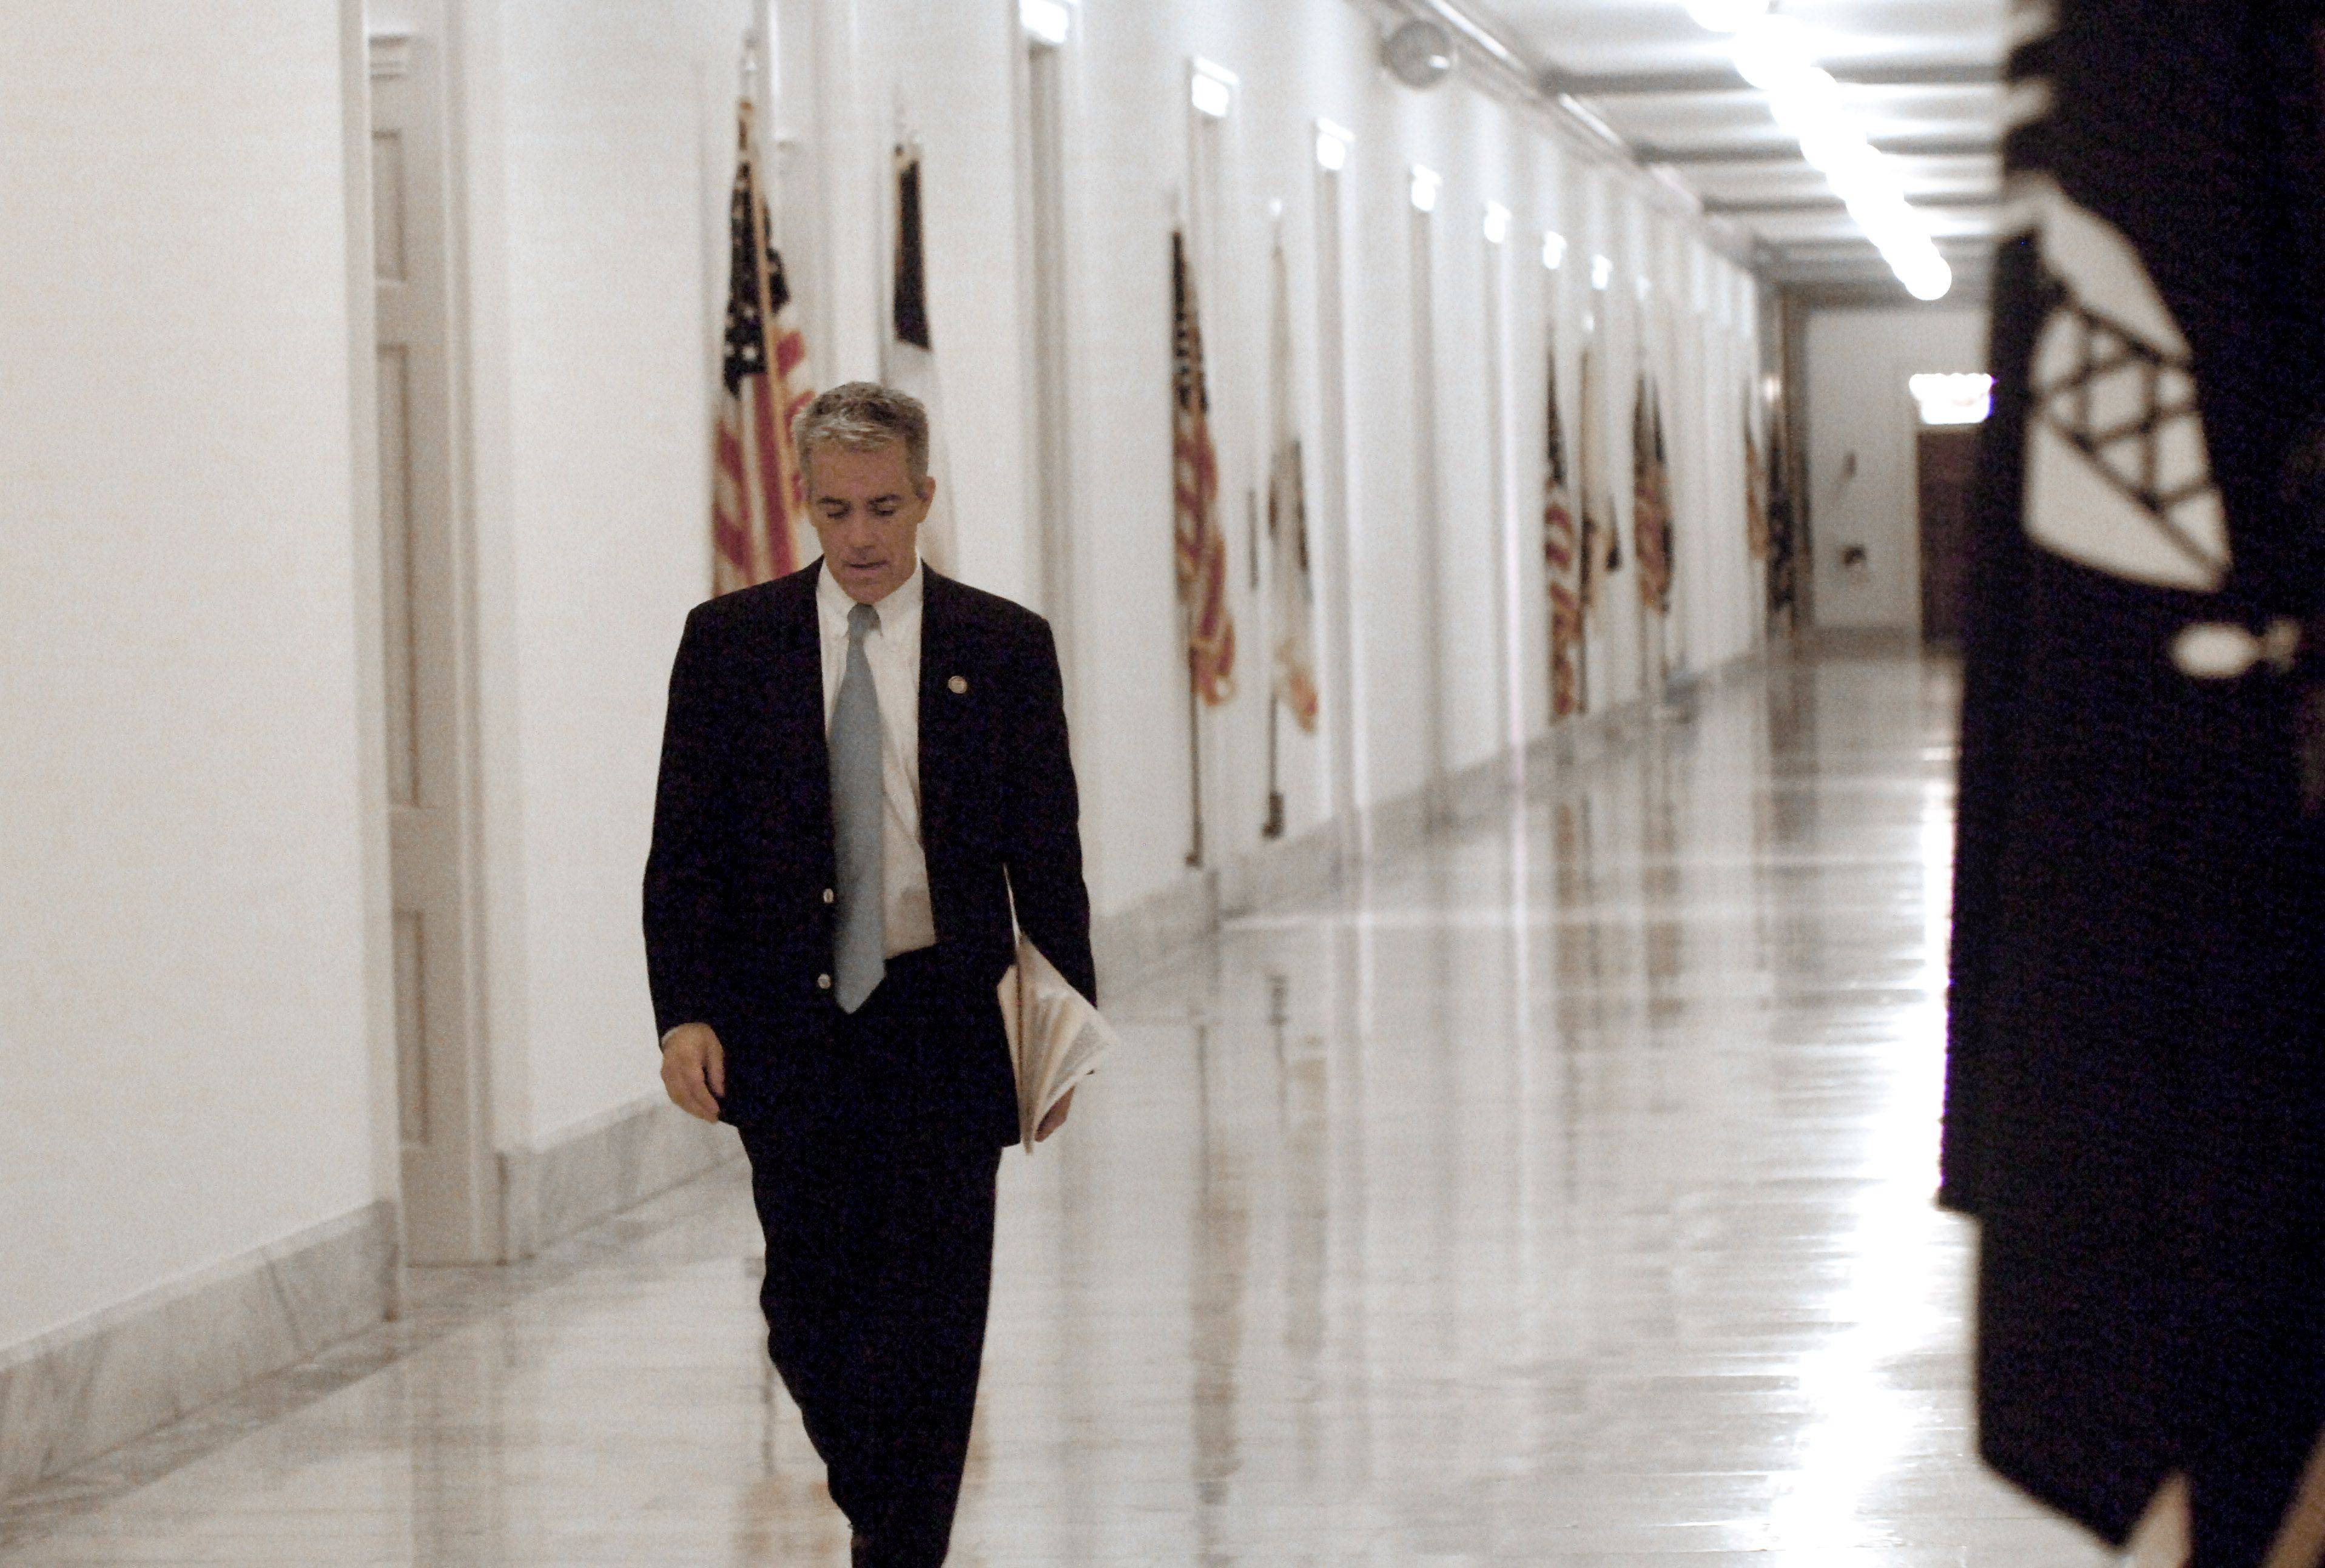 8th District Congressman Joe Walsh walks to his Cannon House office after a GOP breakfast meeting.